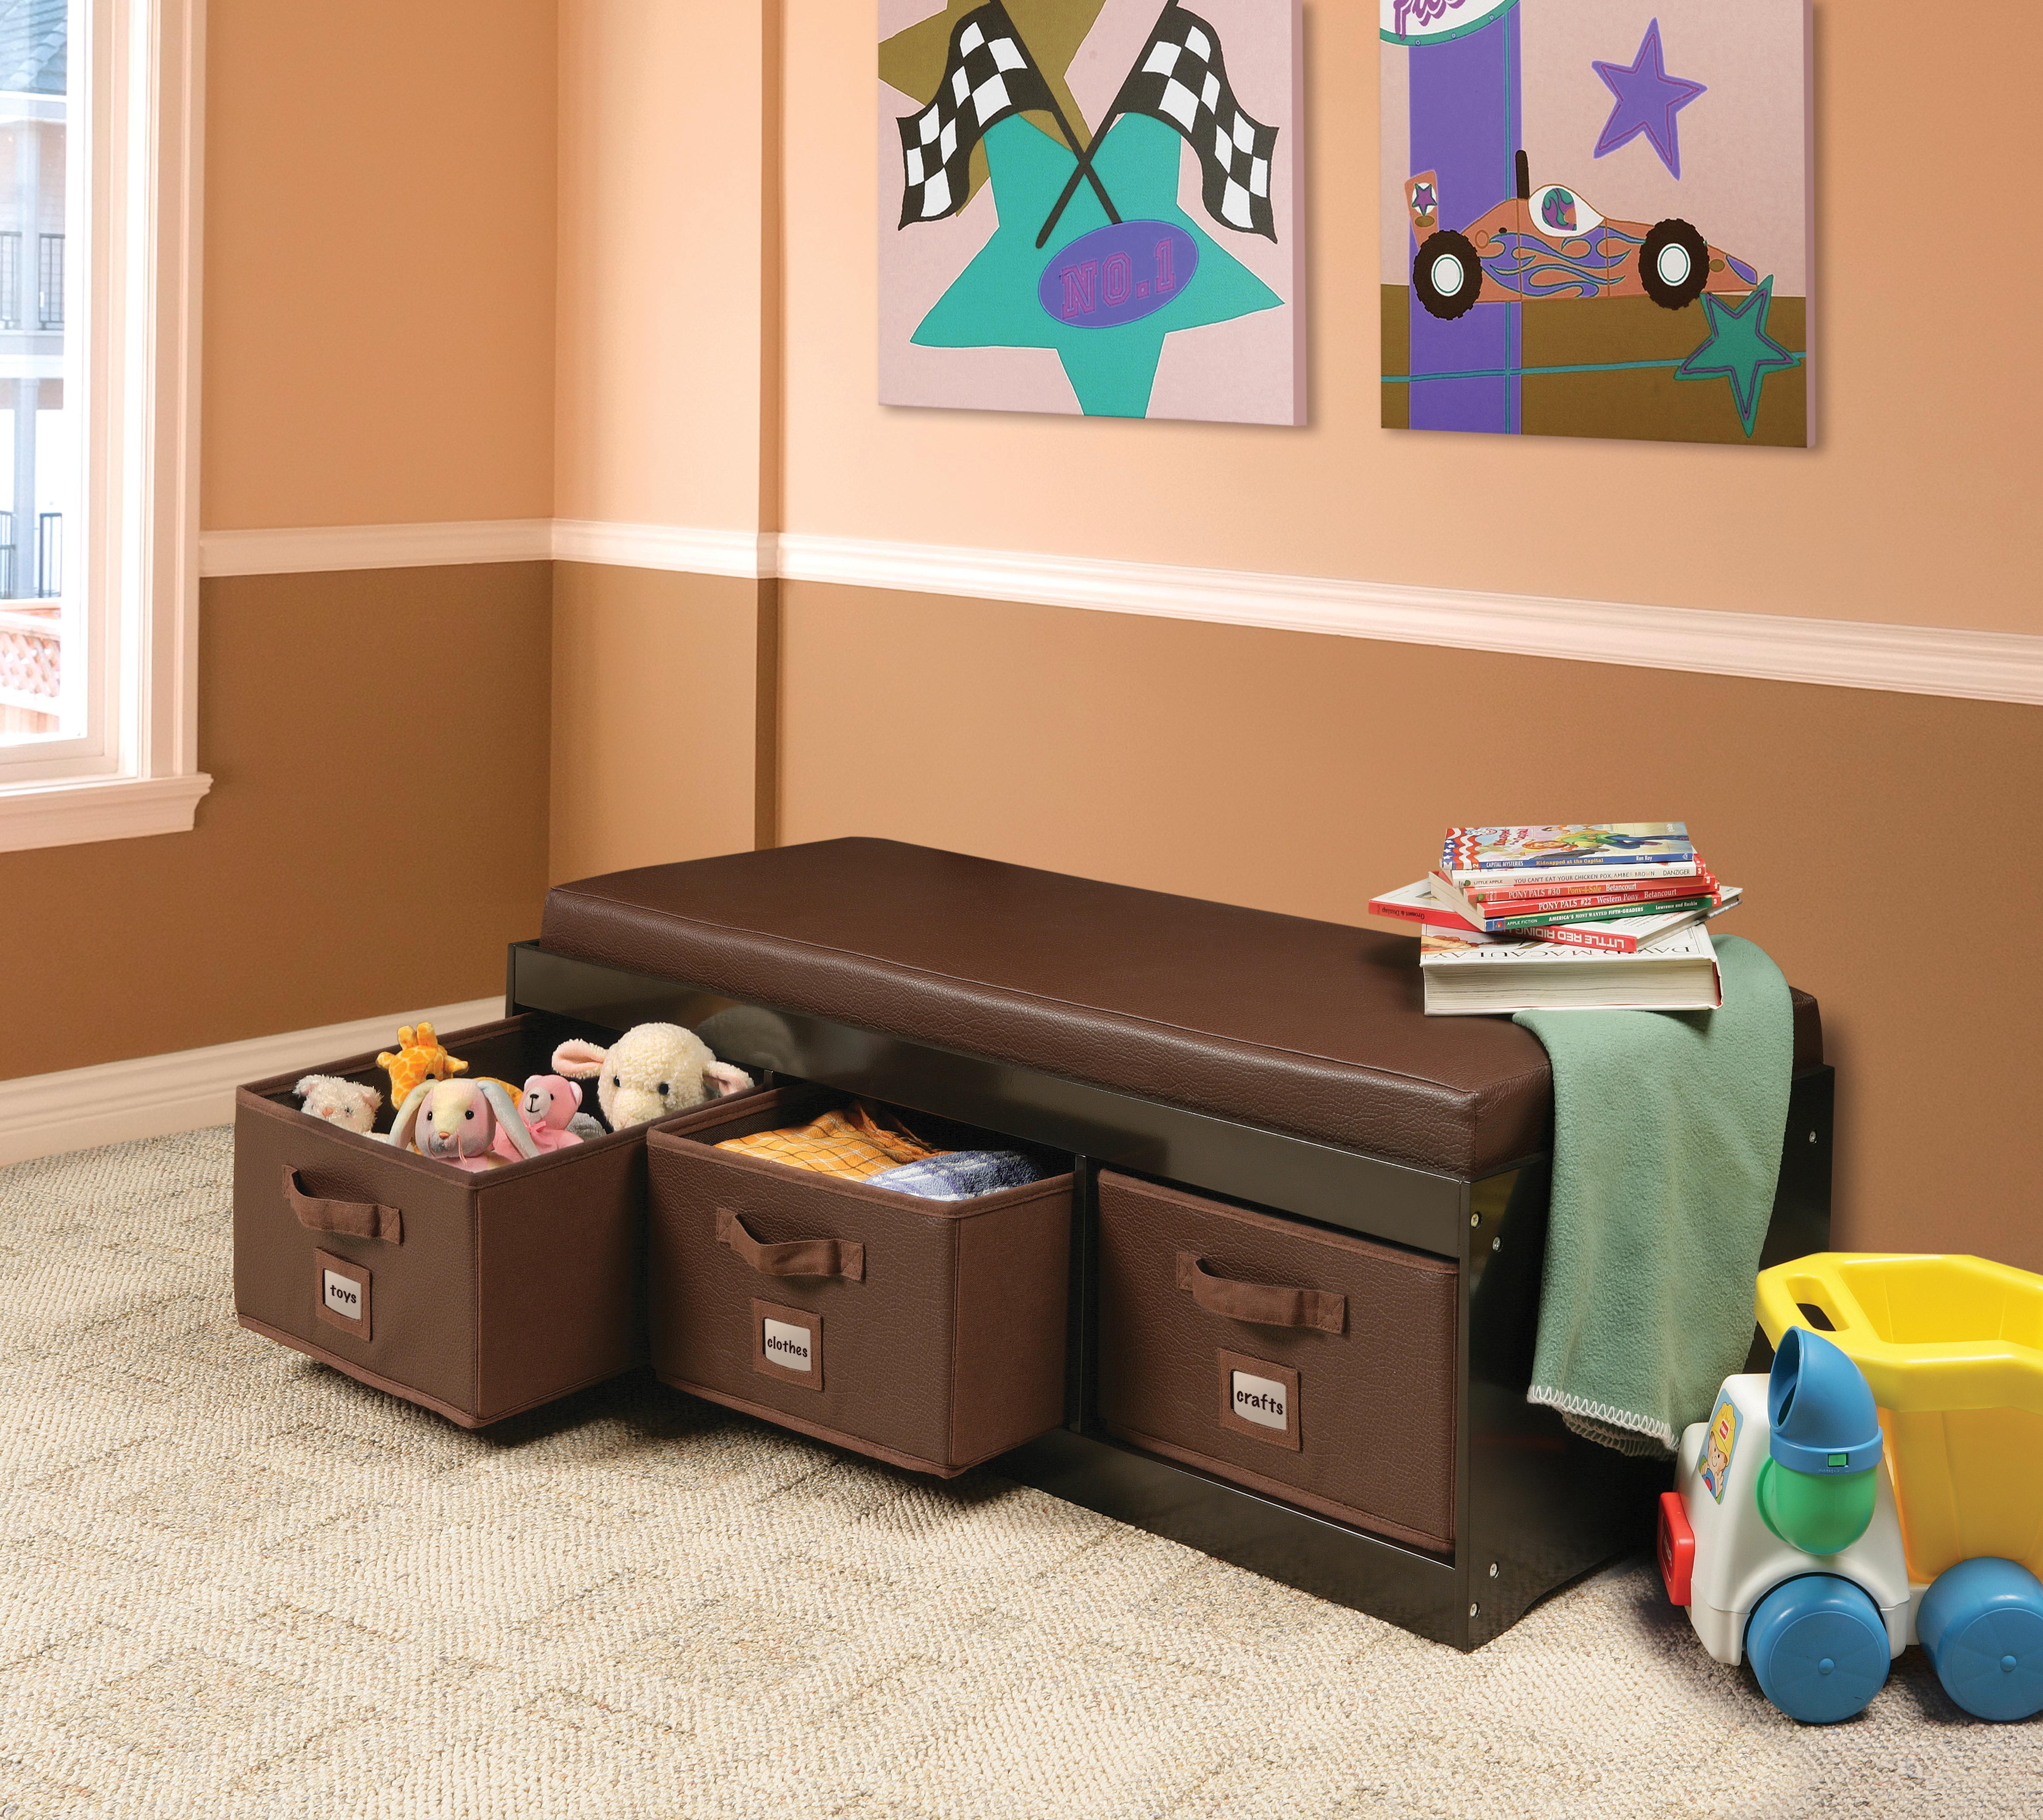 Amazon.com : Badger Basket Kid's Storage Bench with Cushion and ...